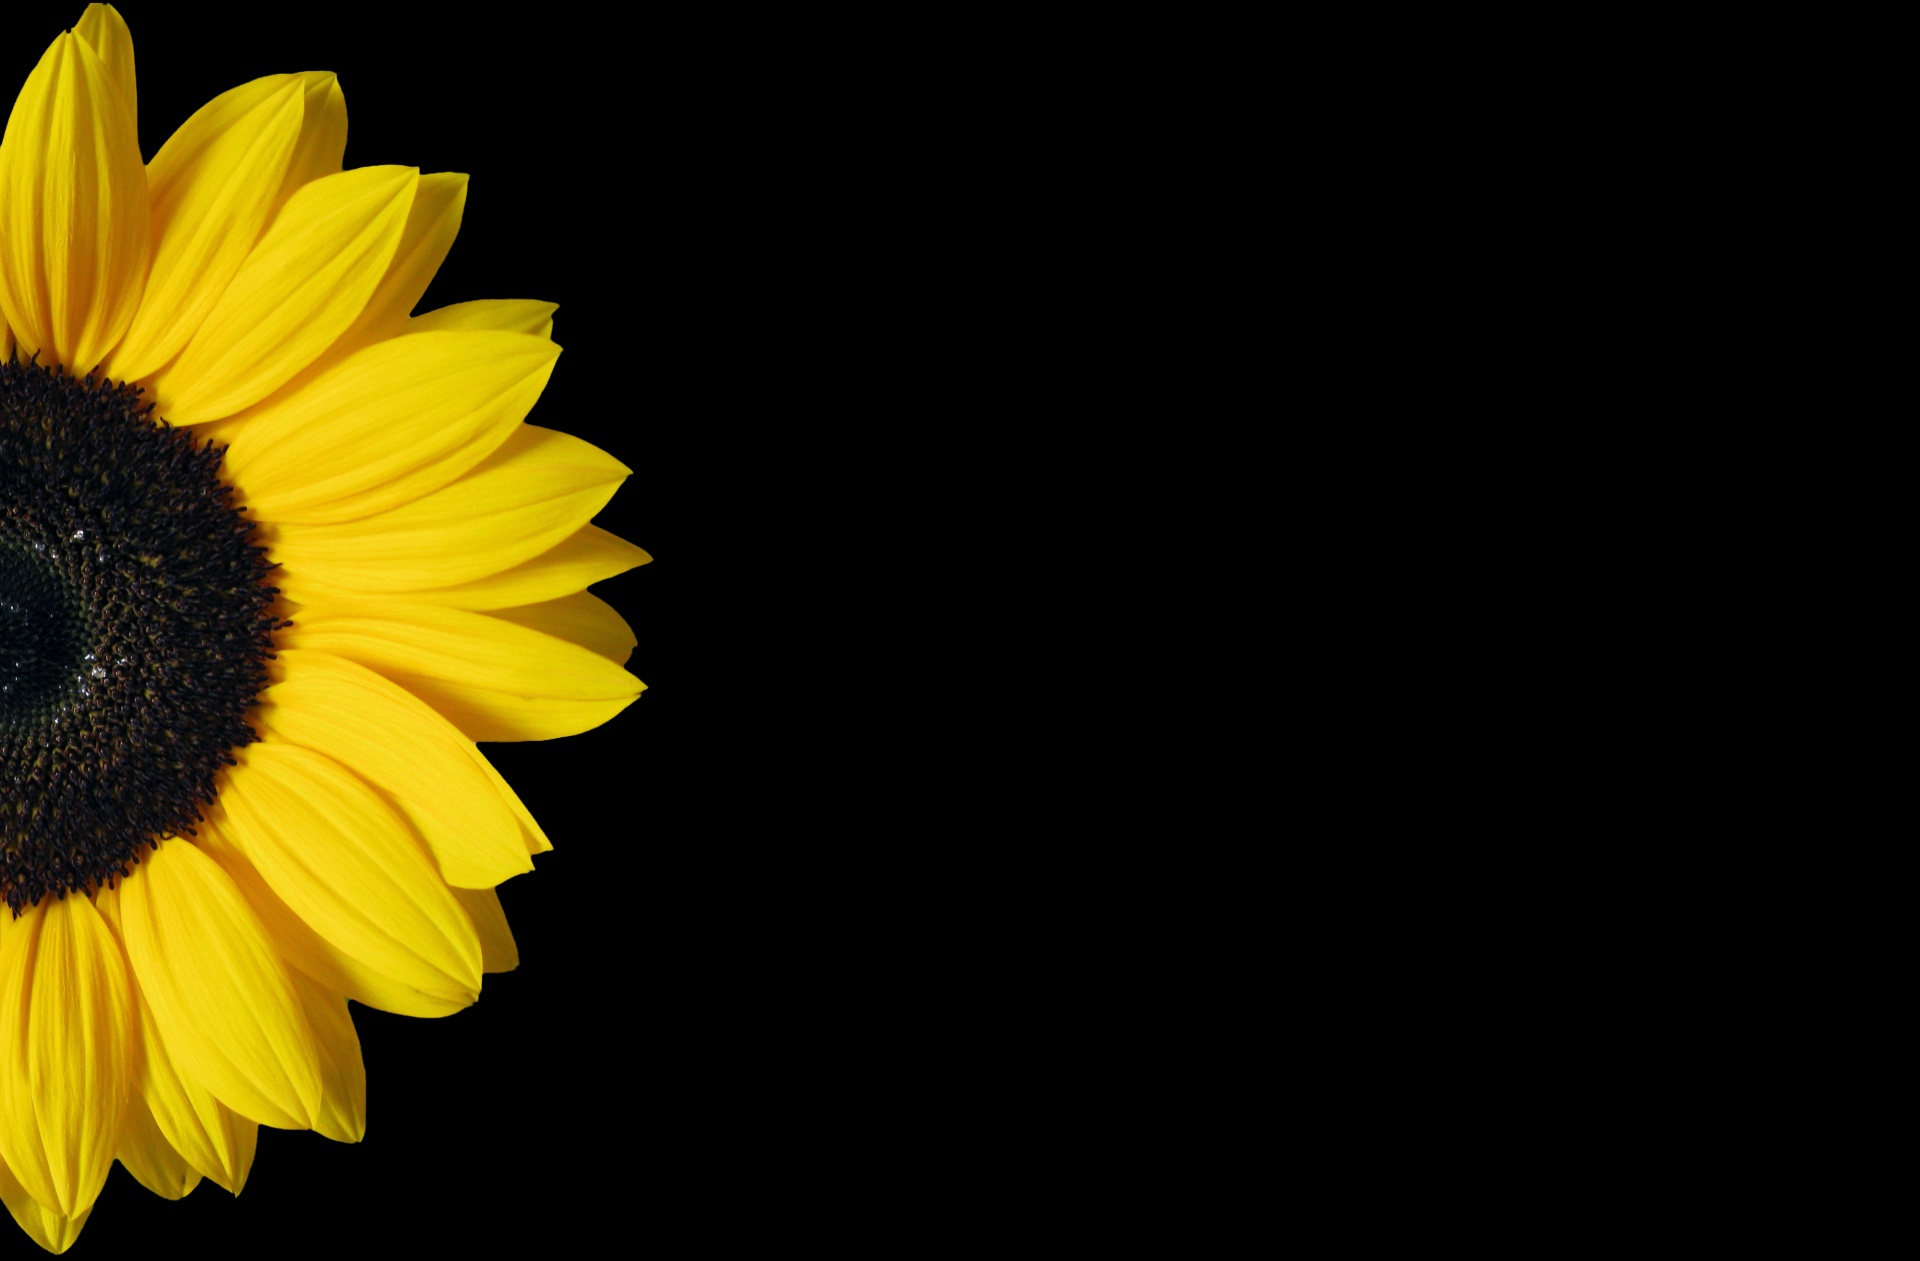 Sunflower On Black Free Stock Photo - Public Domain Pictures